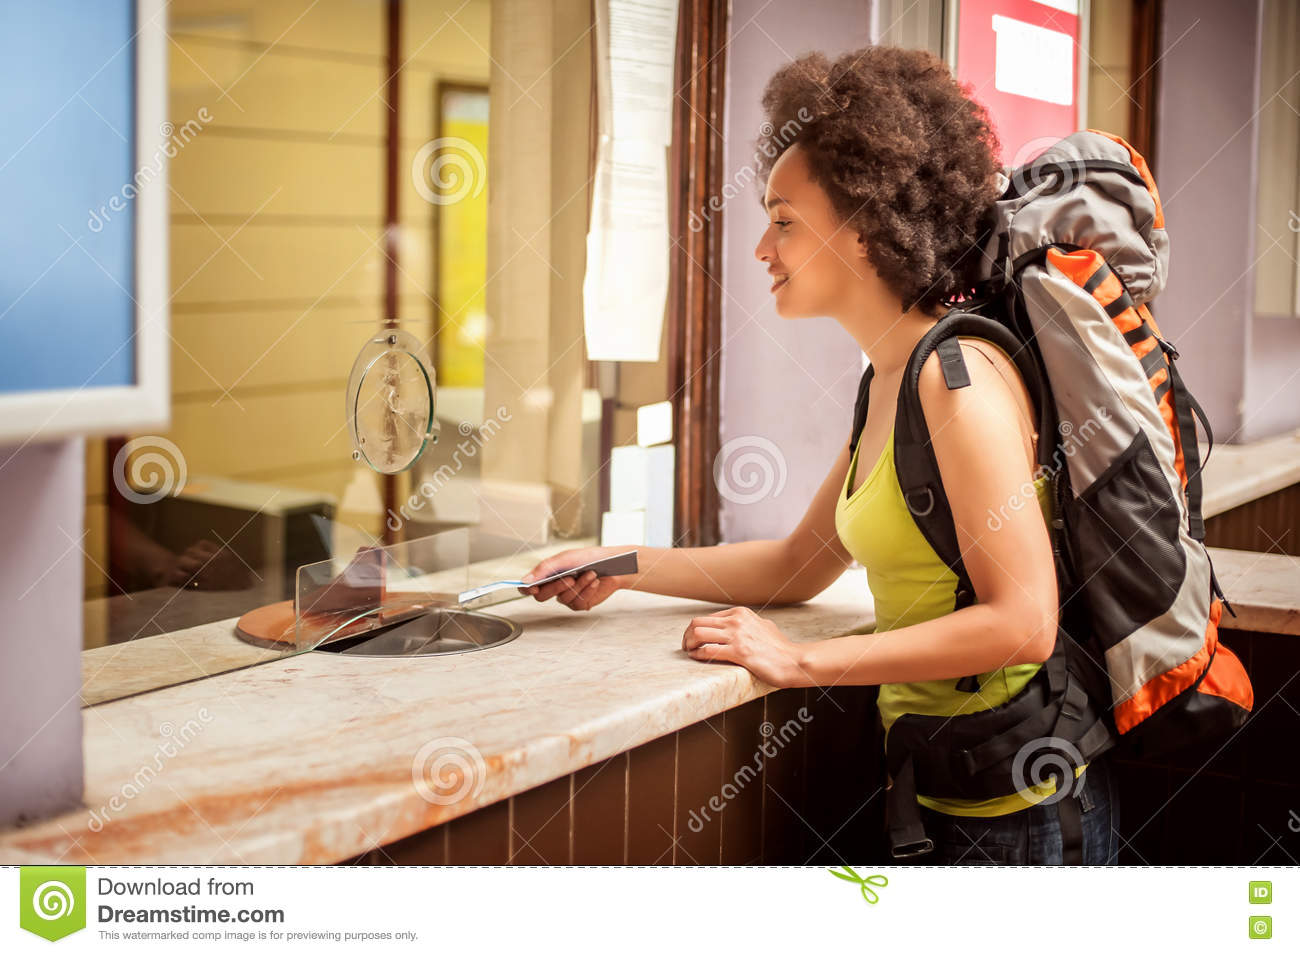 Female tourist buys a ticket at terminal station ticket counter